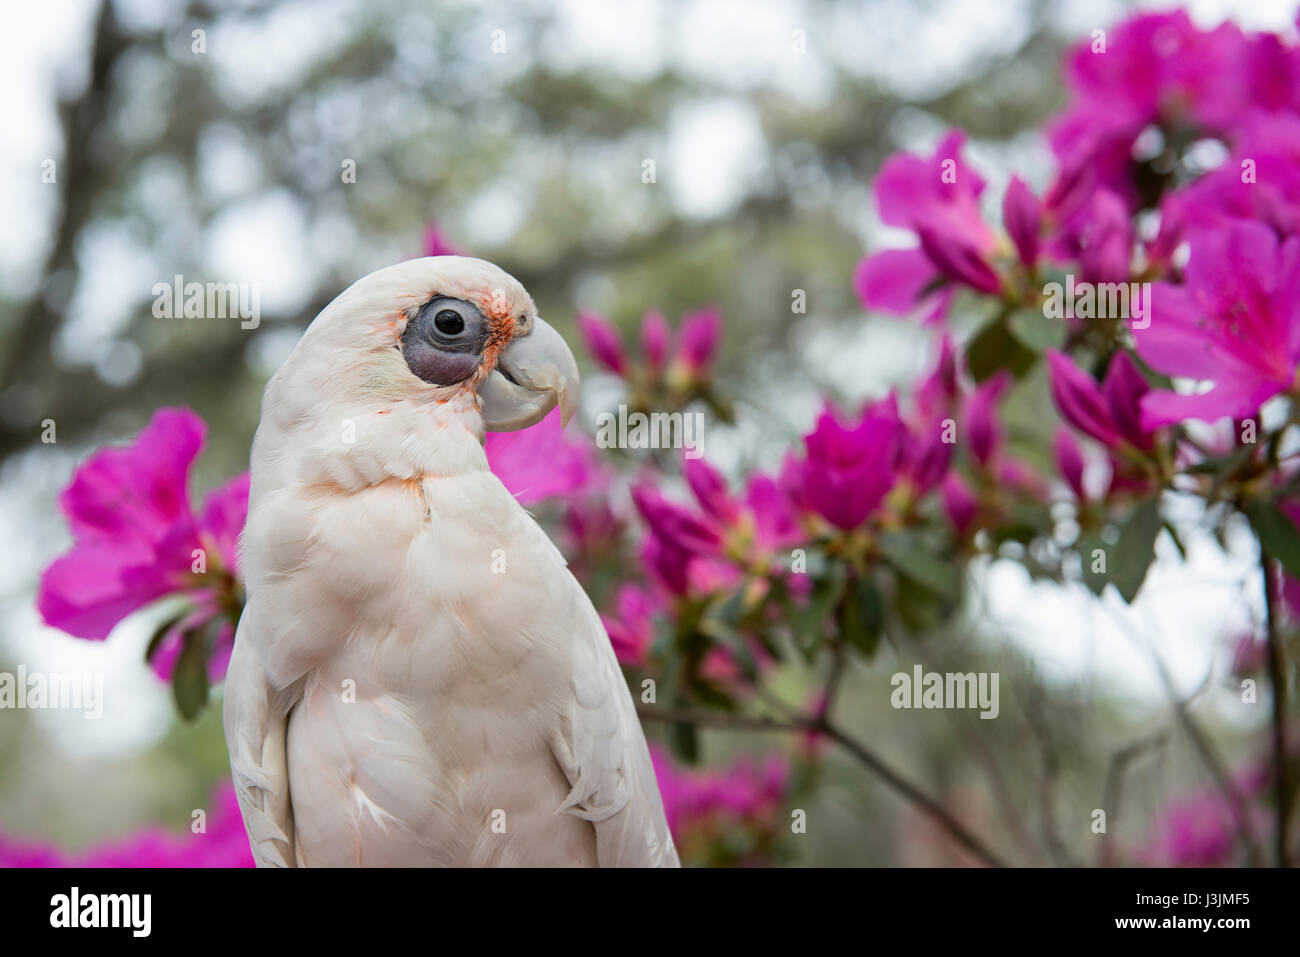 Bare eyed cockatoo in front of an Azalea bush. - Stock Image